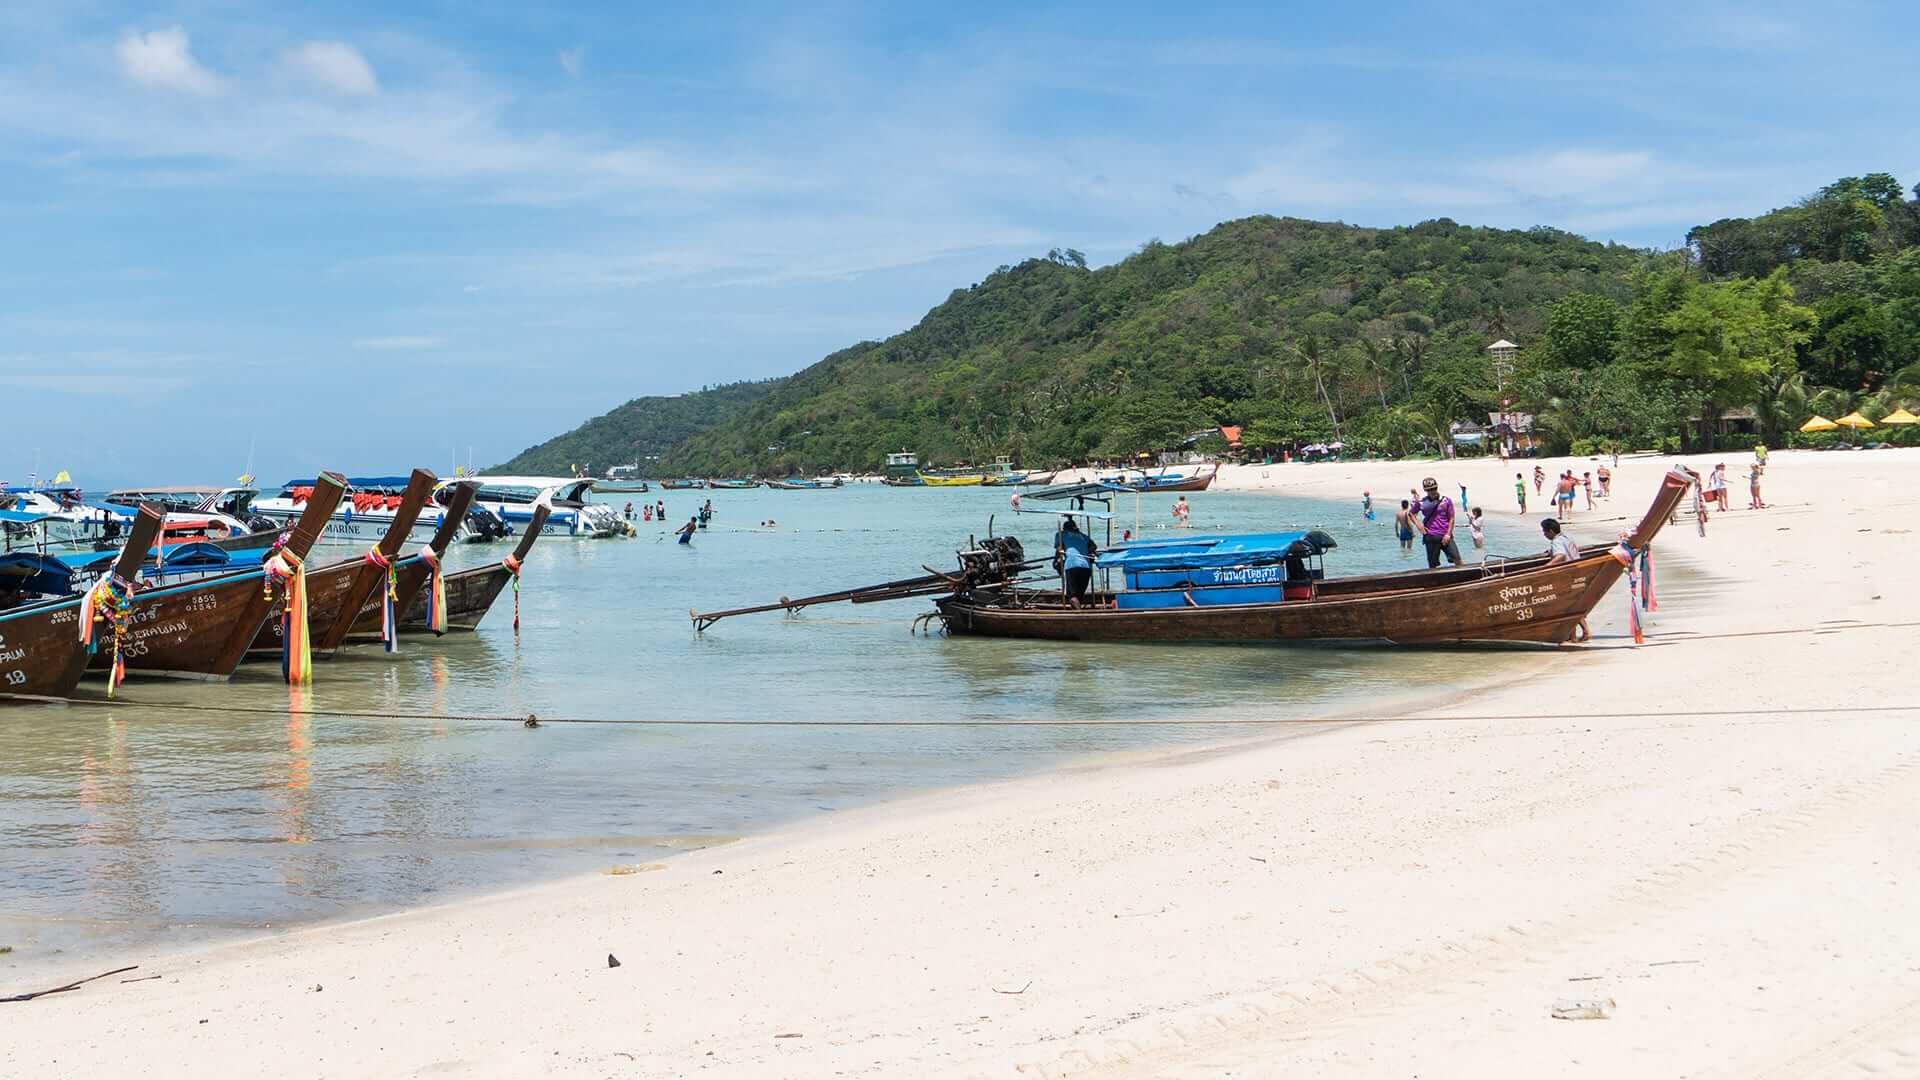 Study Abroad Experience in Thailand: Alexandra in Phuket (Prince of Songkla University)